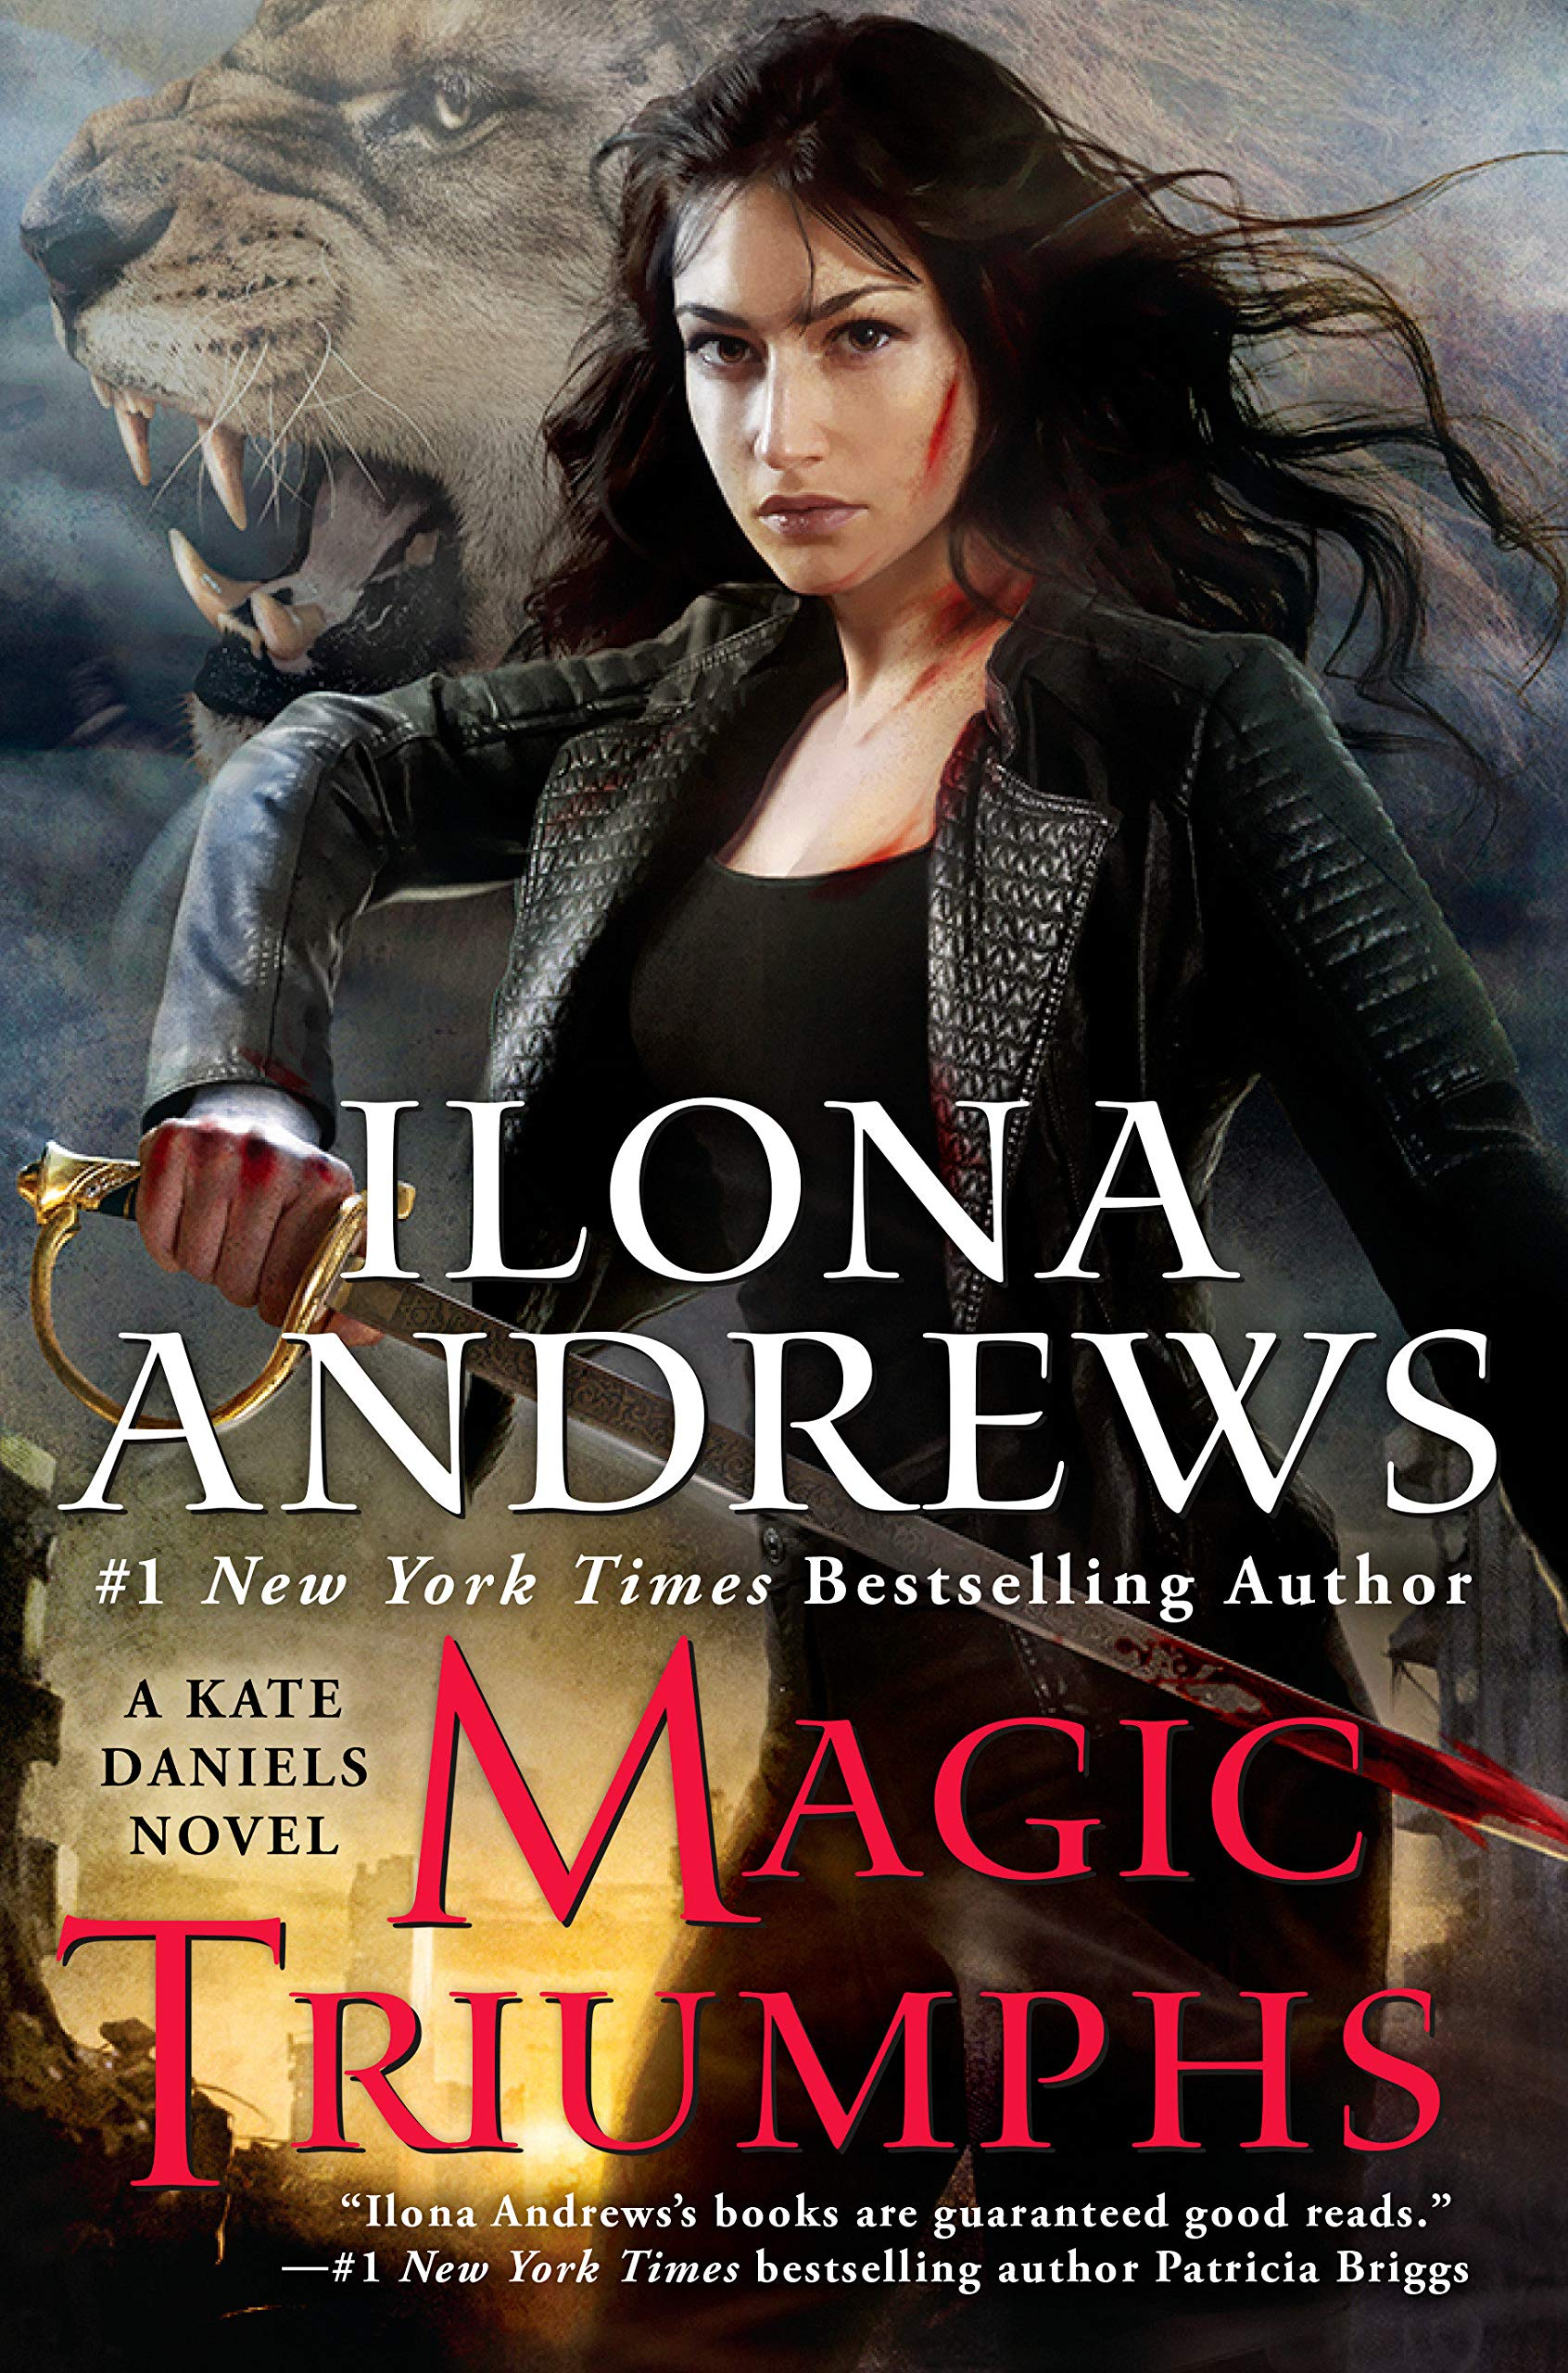 Magic Triumphs (Kate Daniels): Amazon.es: Ilona Andrews: Libros en idiomas extranjeros